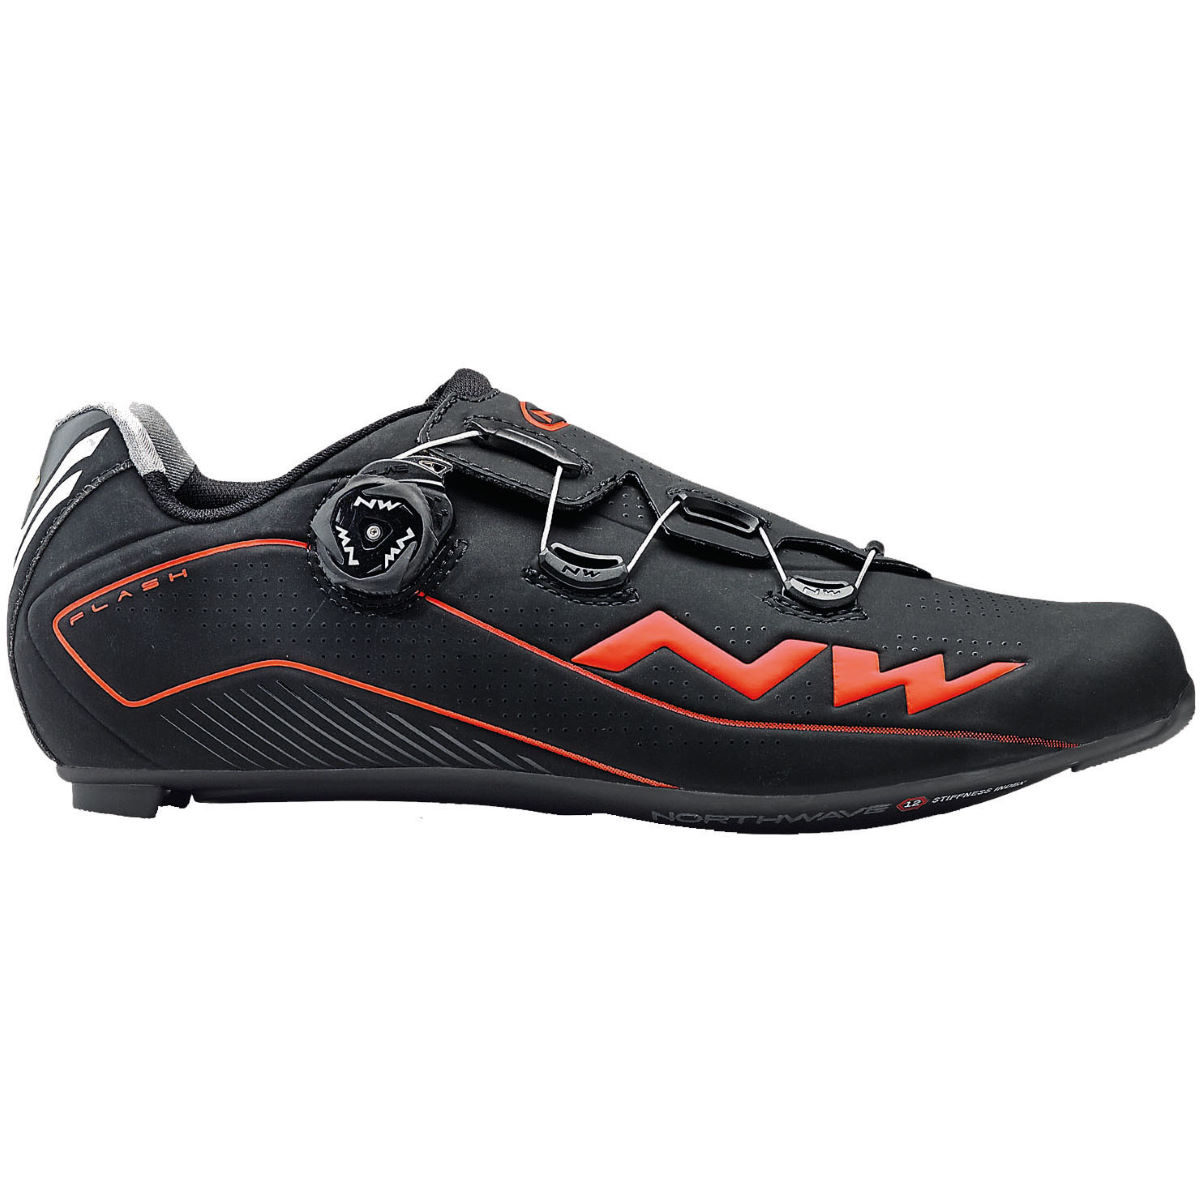 Zapatillas Northwave Flash 2 Carbon - Zapatillas para bicicletas de carretera